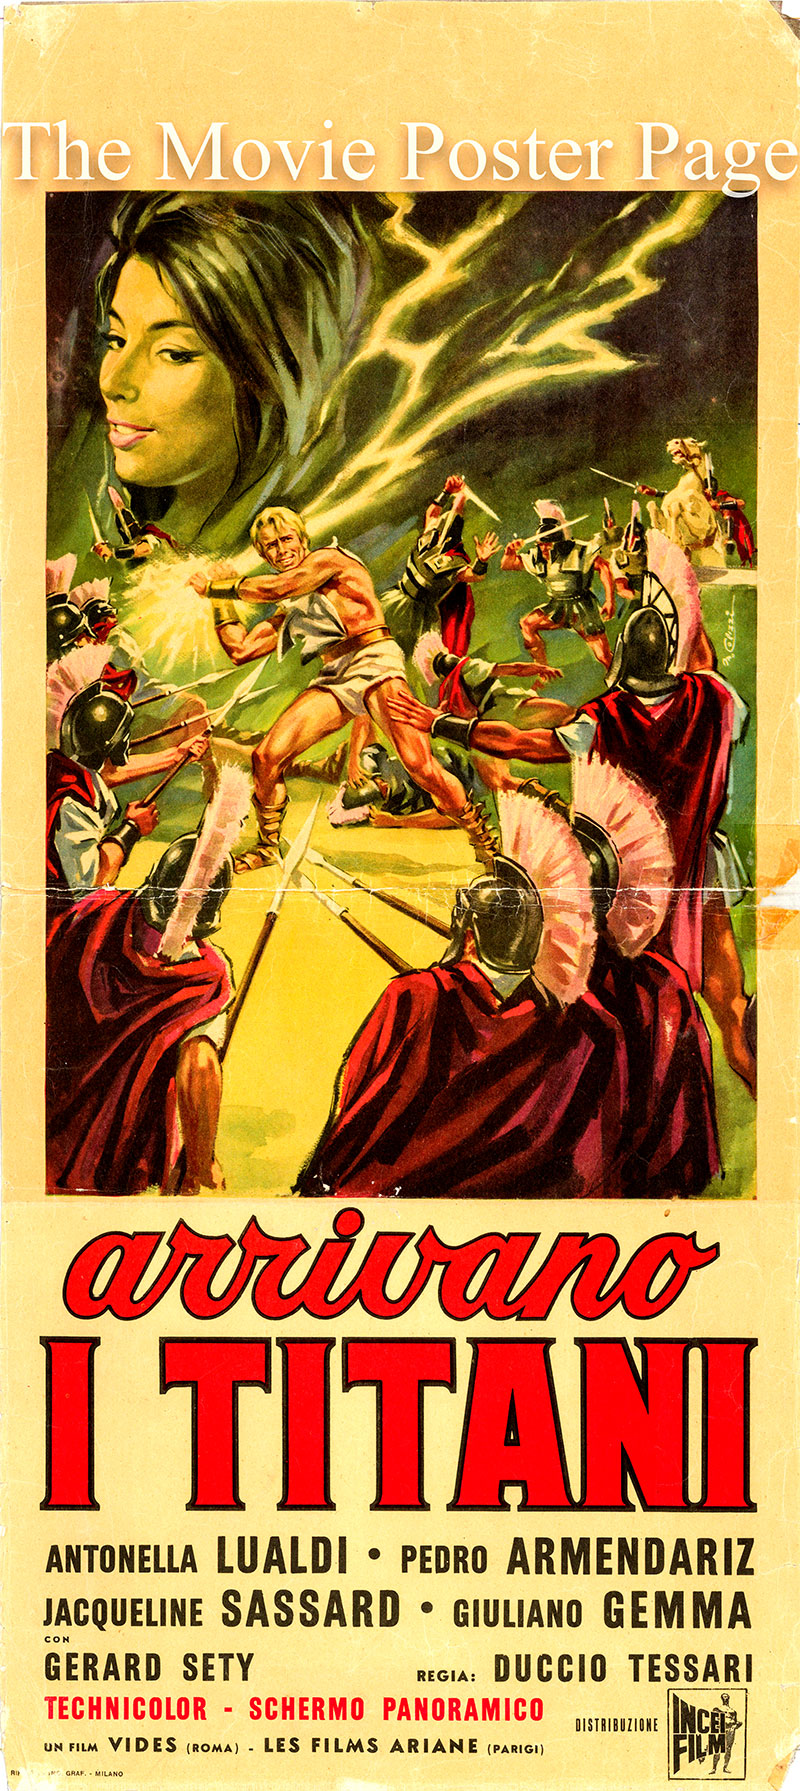 Pictured is an Italian locandina poster for the 1962 Duccio Tessari film My Son, The Hero starring Giuliano Gemma as Krios.